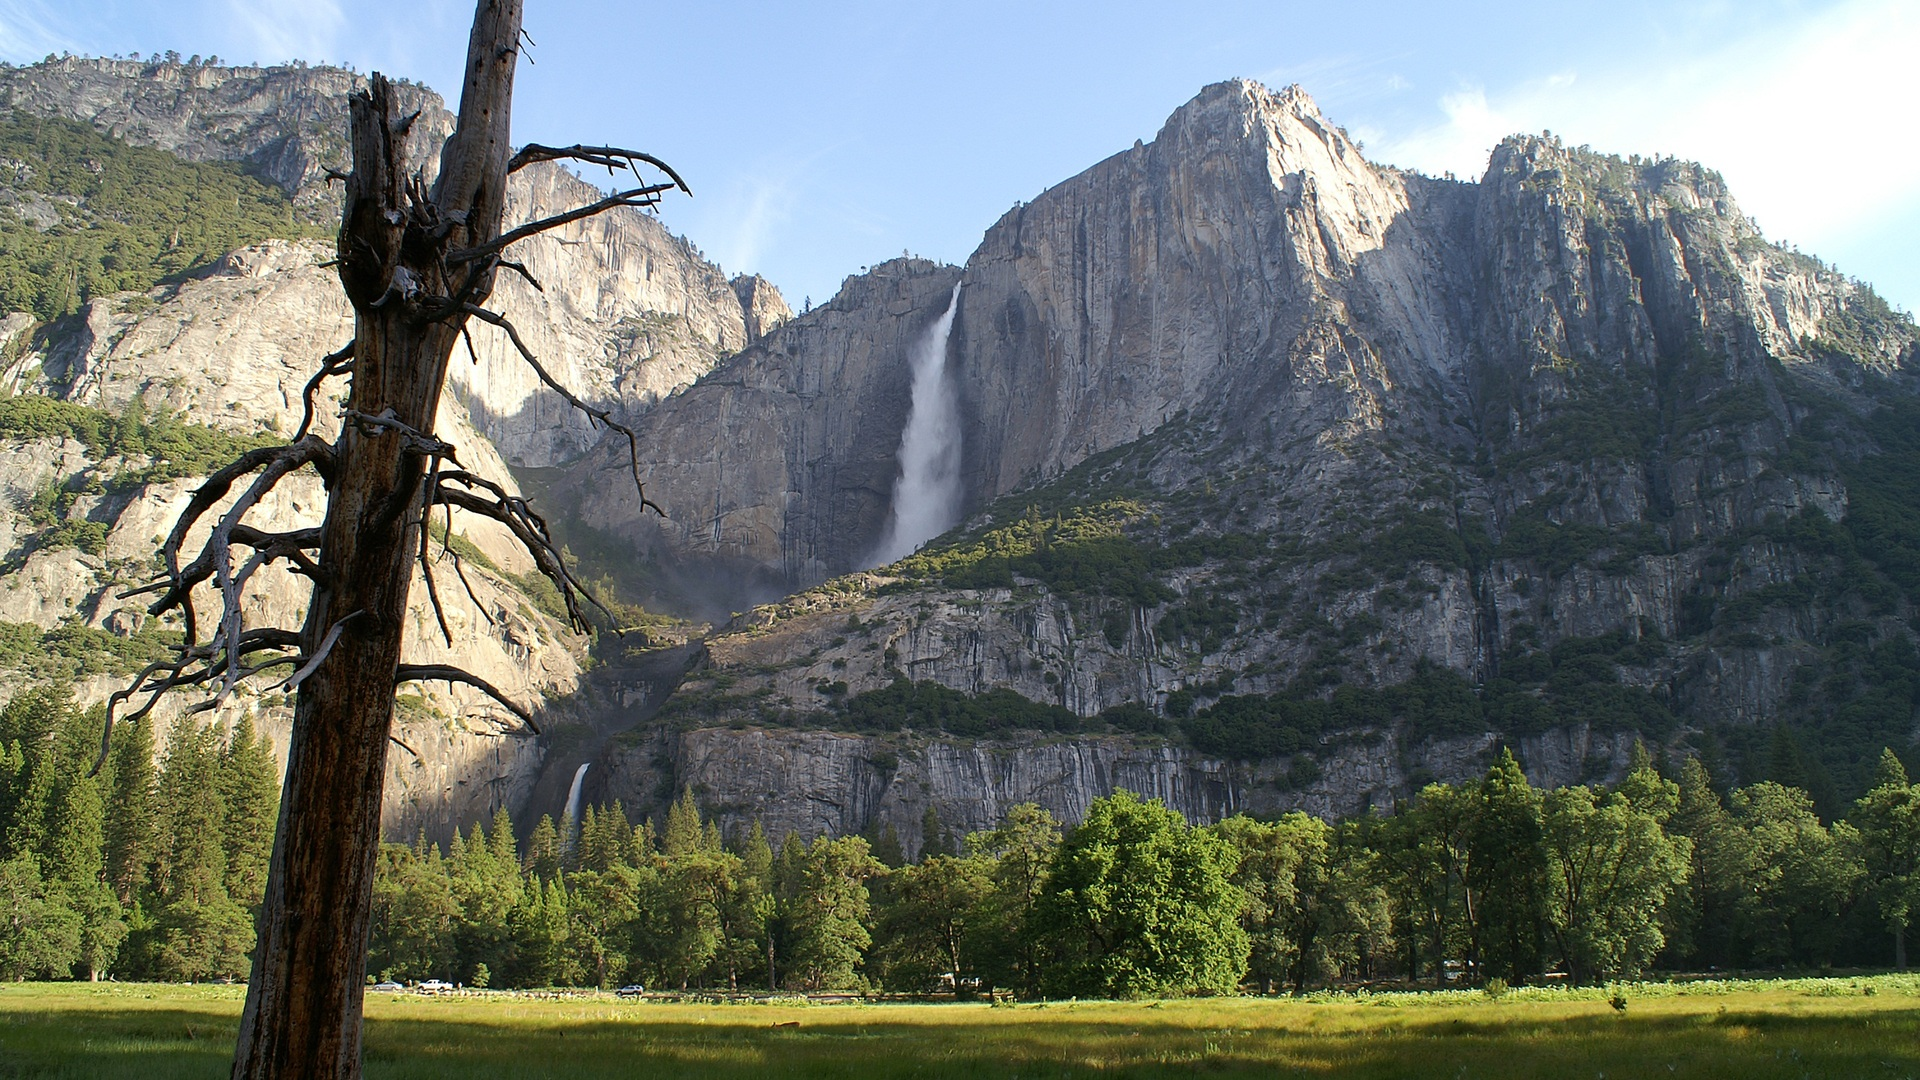 Hd wallpaper yosemite - Landscapes Wallpapers Landscapes Background Page 5